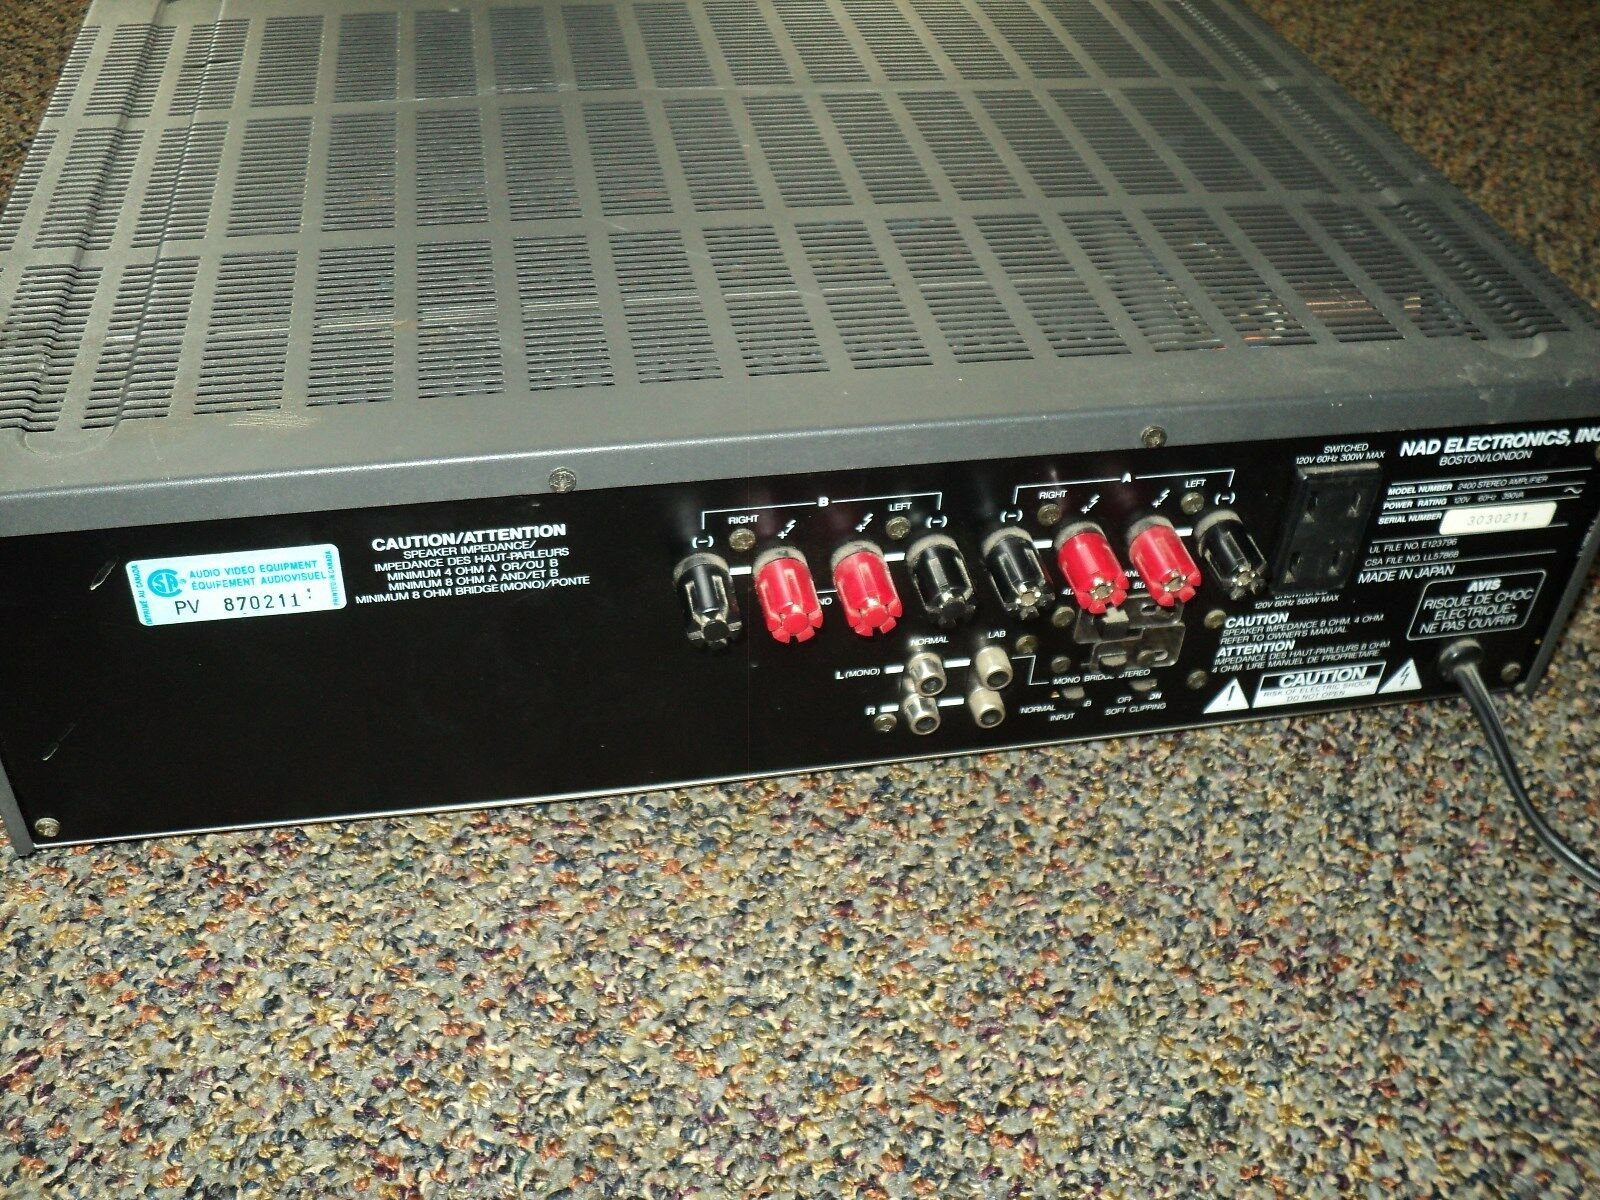 Monitor Series Power Amplifier 2400 Lucasfilm Thx Audio 2 Channel 200 Watts Super Bridge Amplifiers 1 Of 3only Available